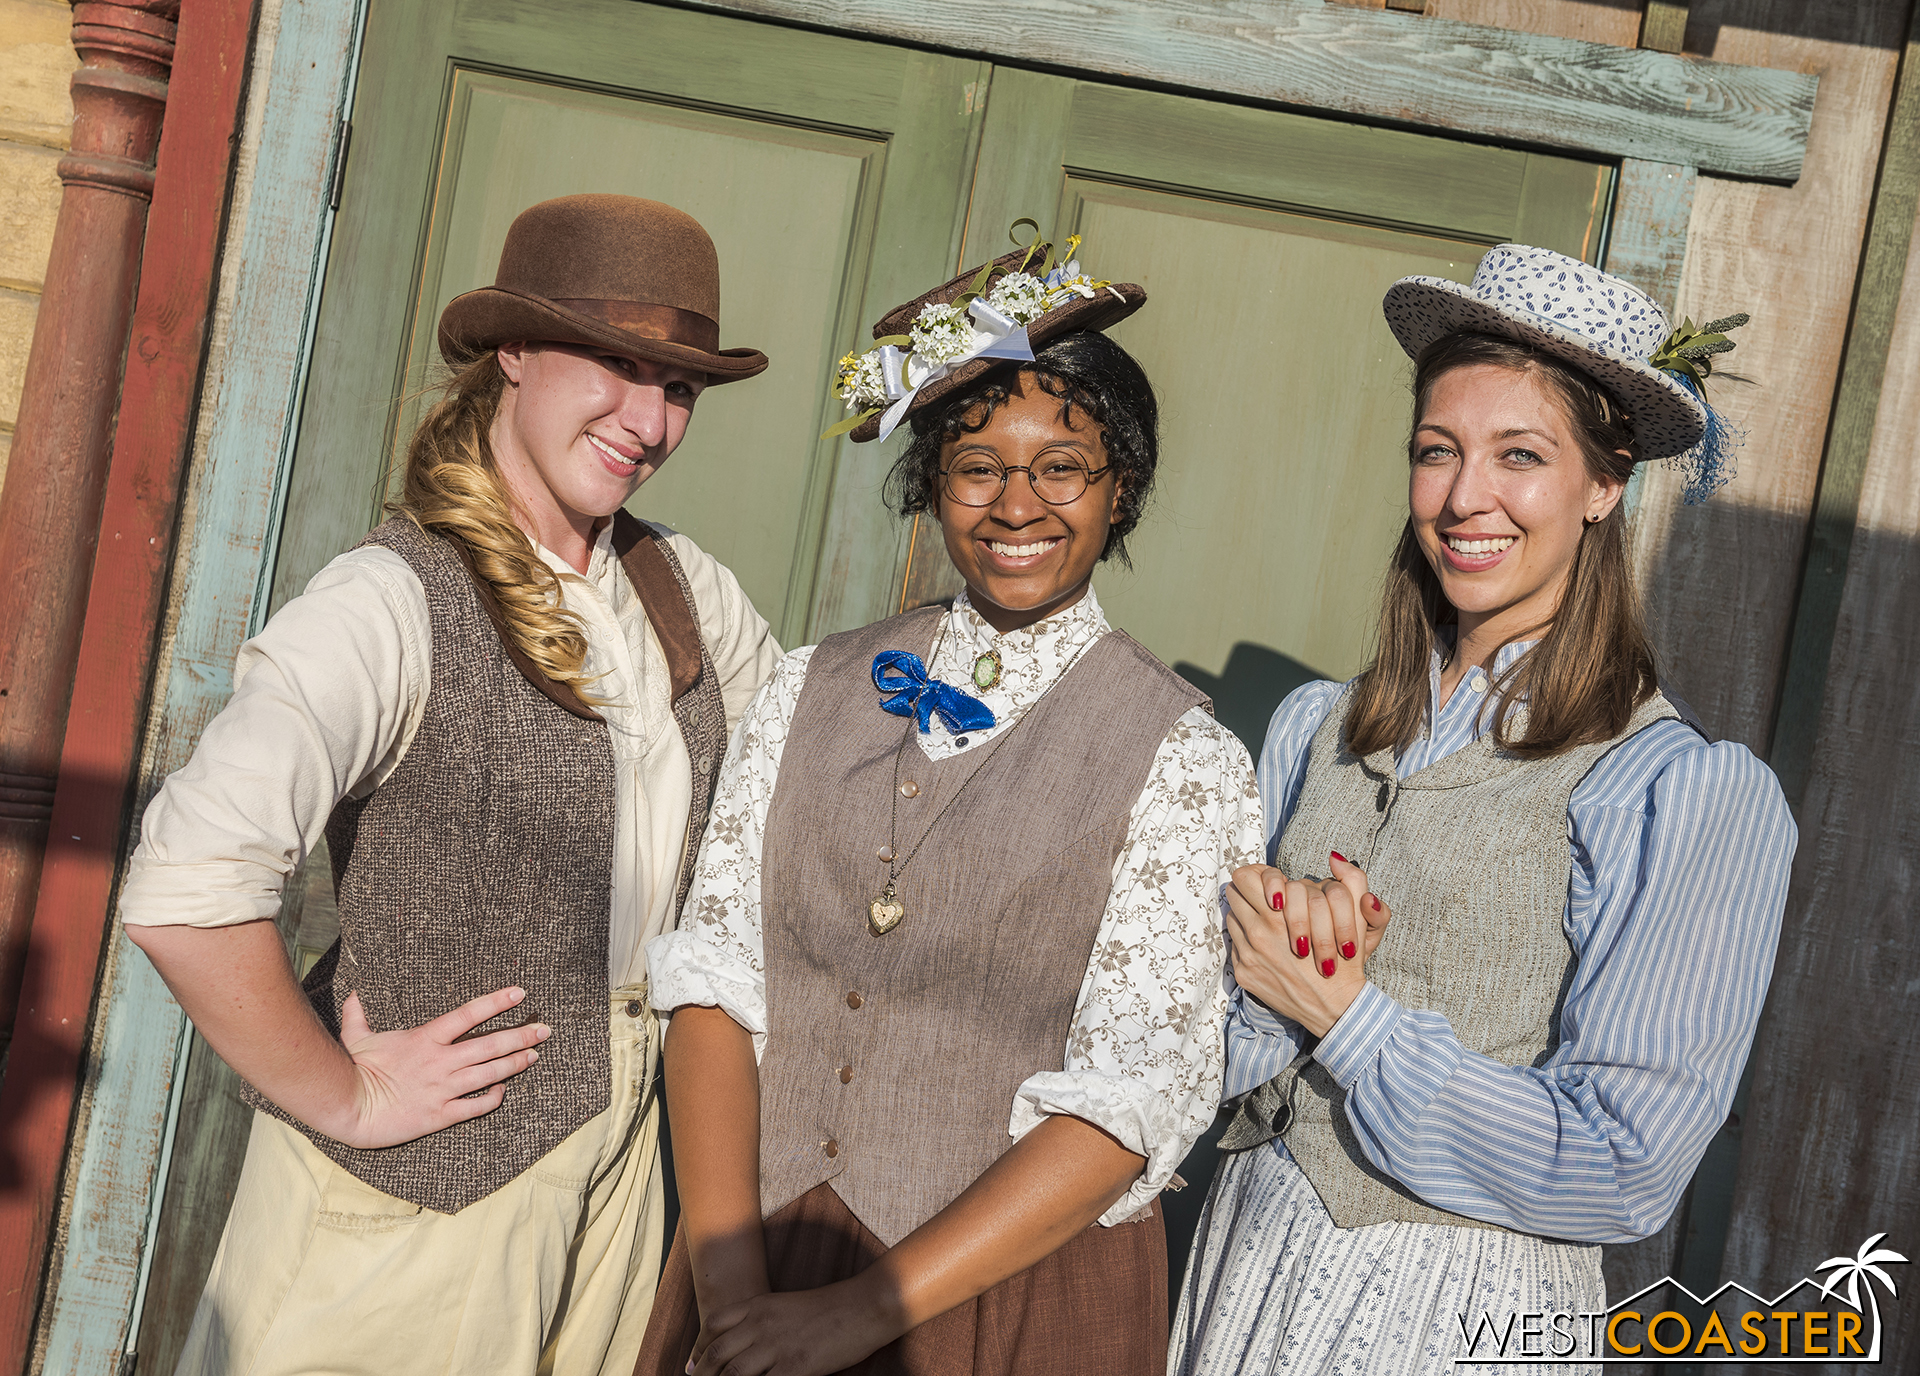 From left to right,  Calico Gazette  reporter, Izzy Malloy, schoolteacher, Marybelle Starling, and Miss Sierra pose for a photo.